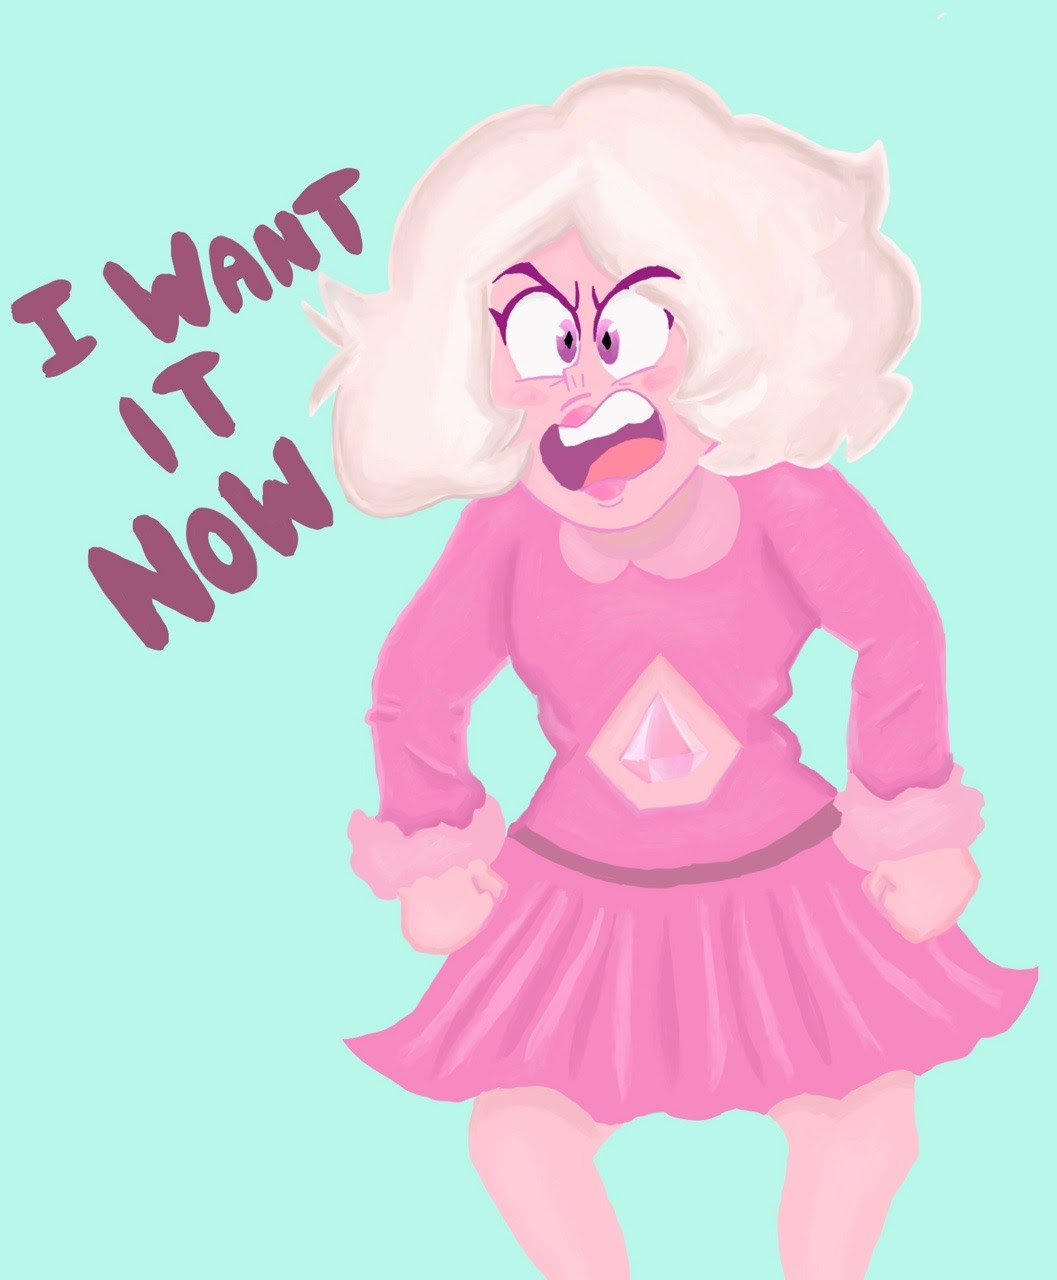 Little commission of Pink Diamond as Veruca Salt for @videogamesandcartoons